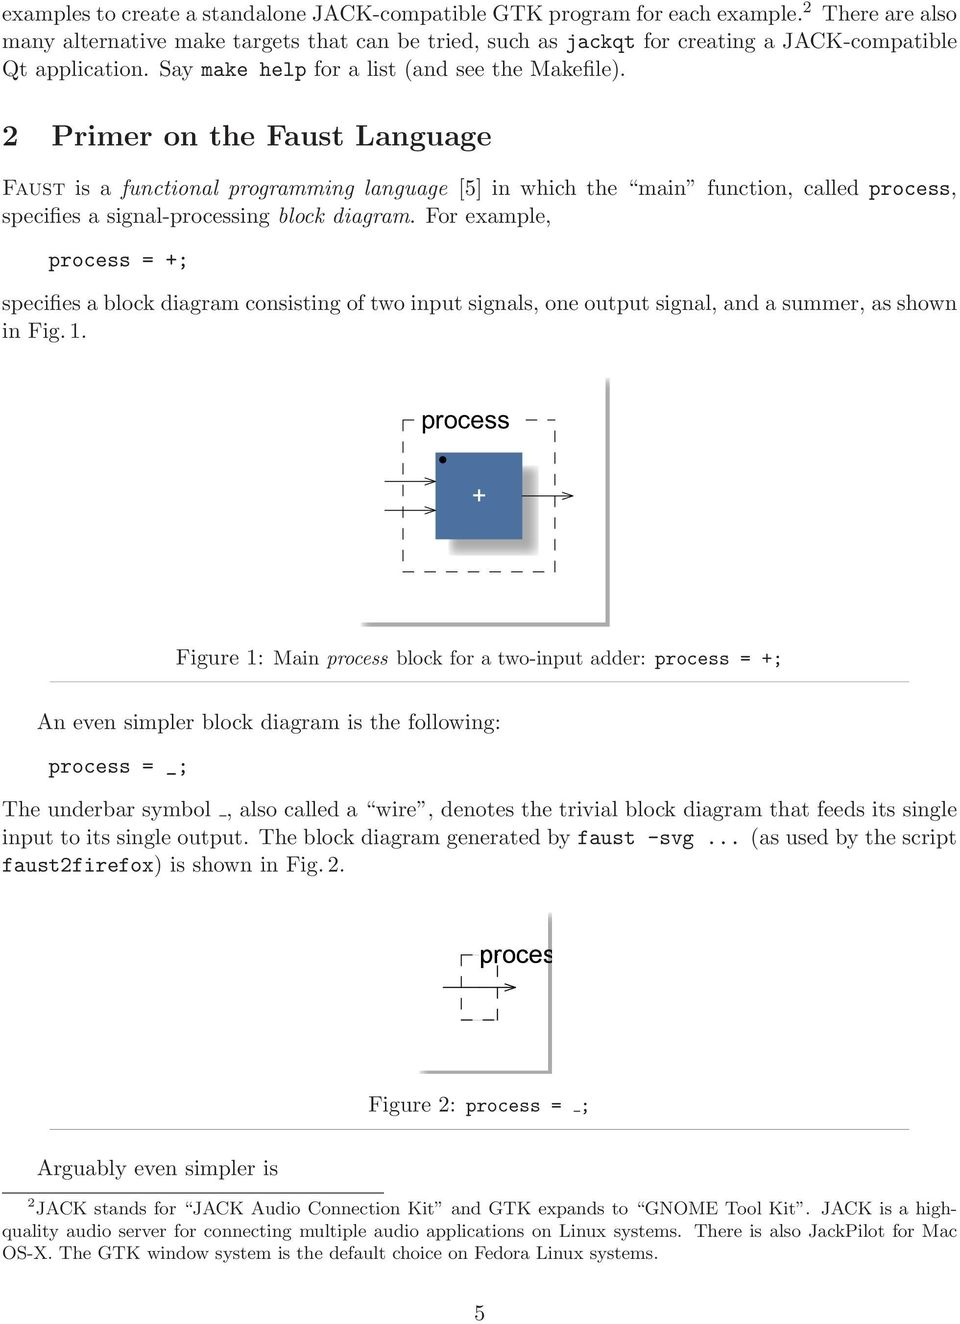 Audio Signal Processing In Faust Pdf Example Of Block Diagram 2 Primer On The Language Is A Functional Programming 5